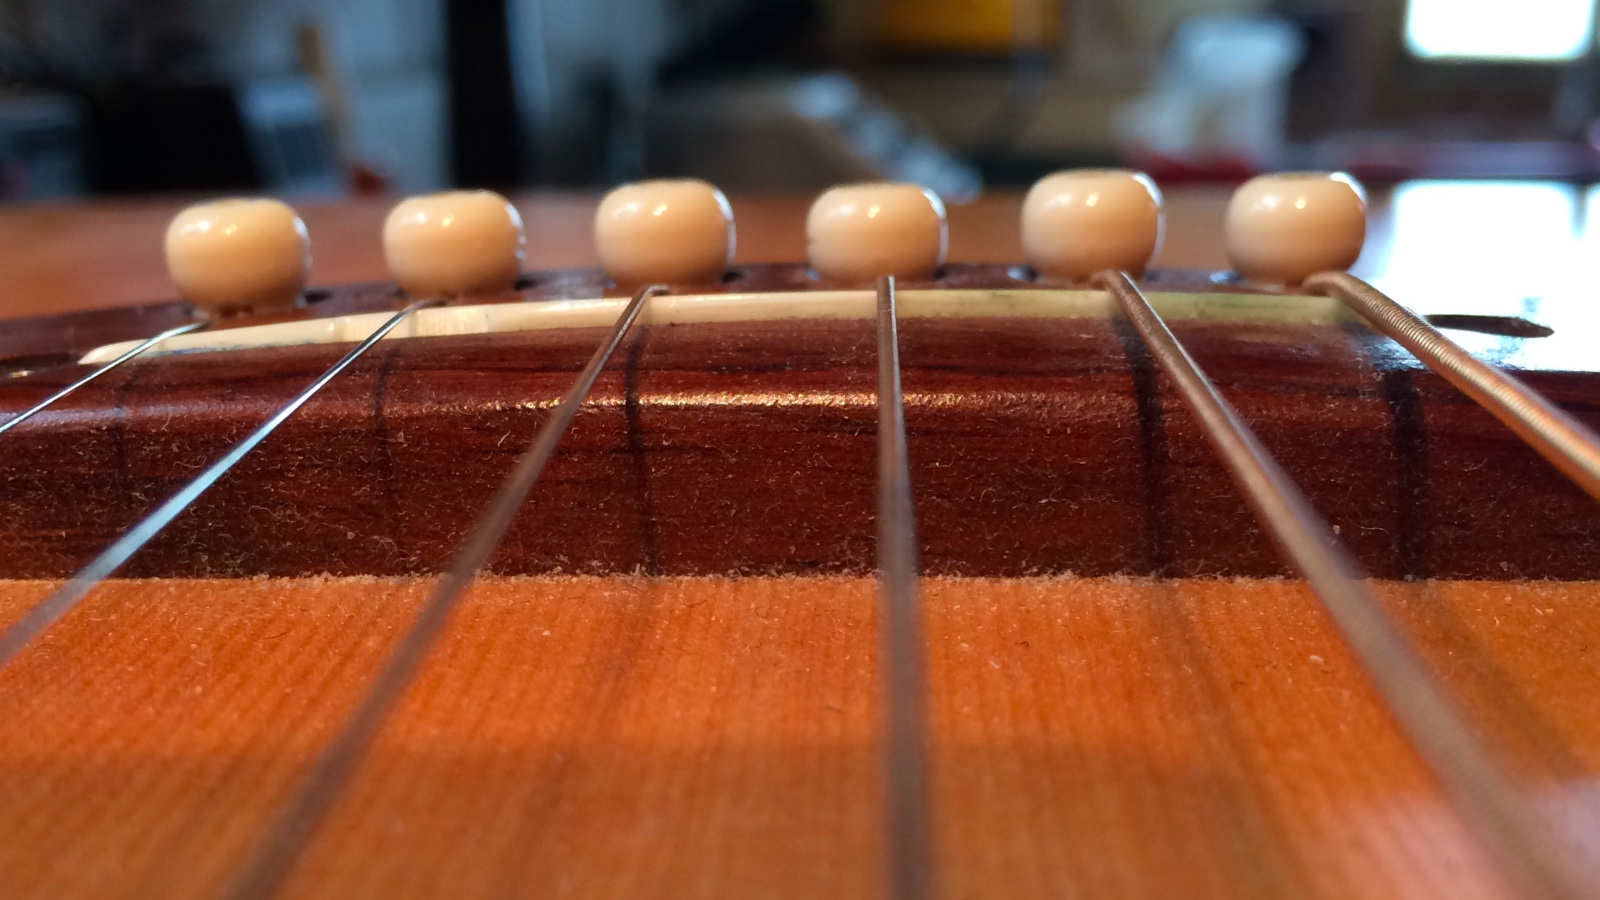 This acoustic guitar saddle is too low. And the action's still too high.